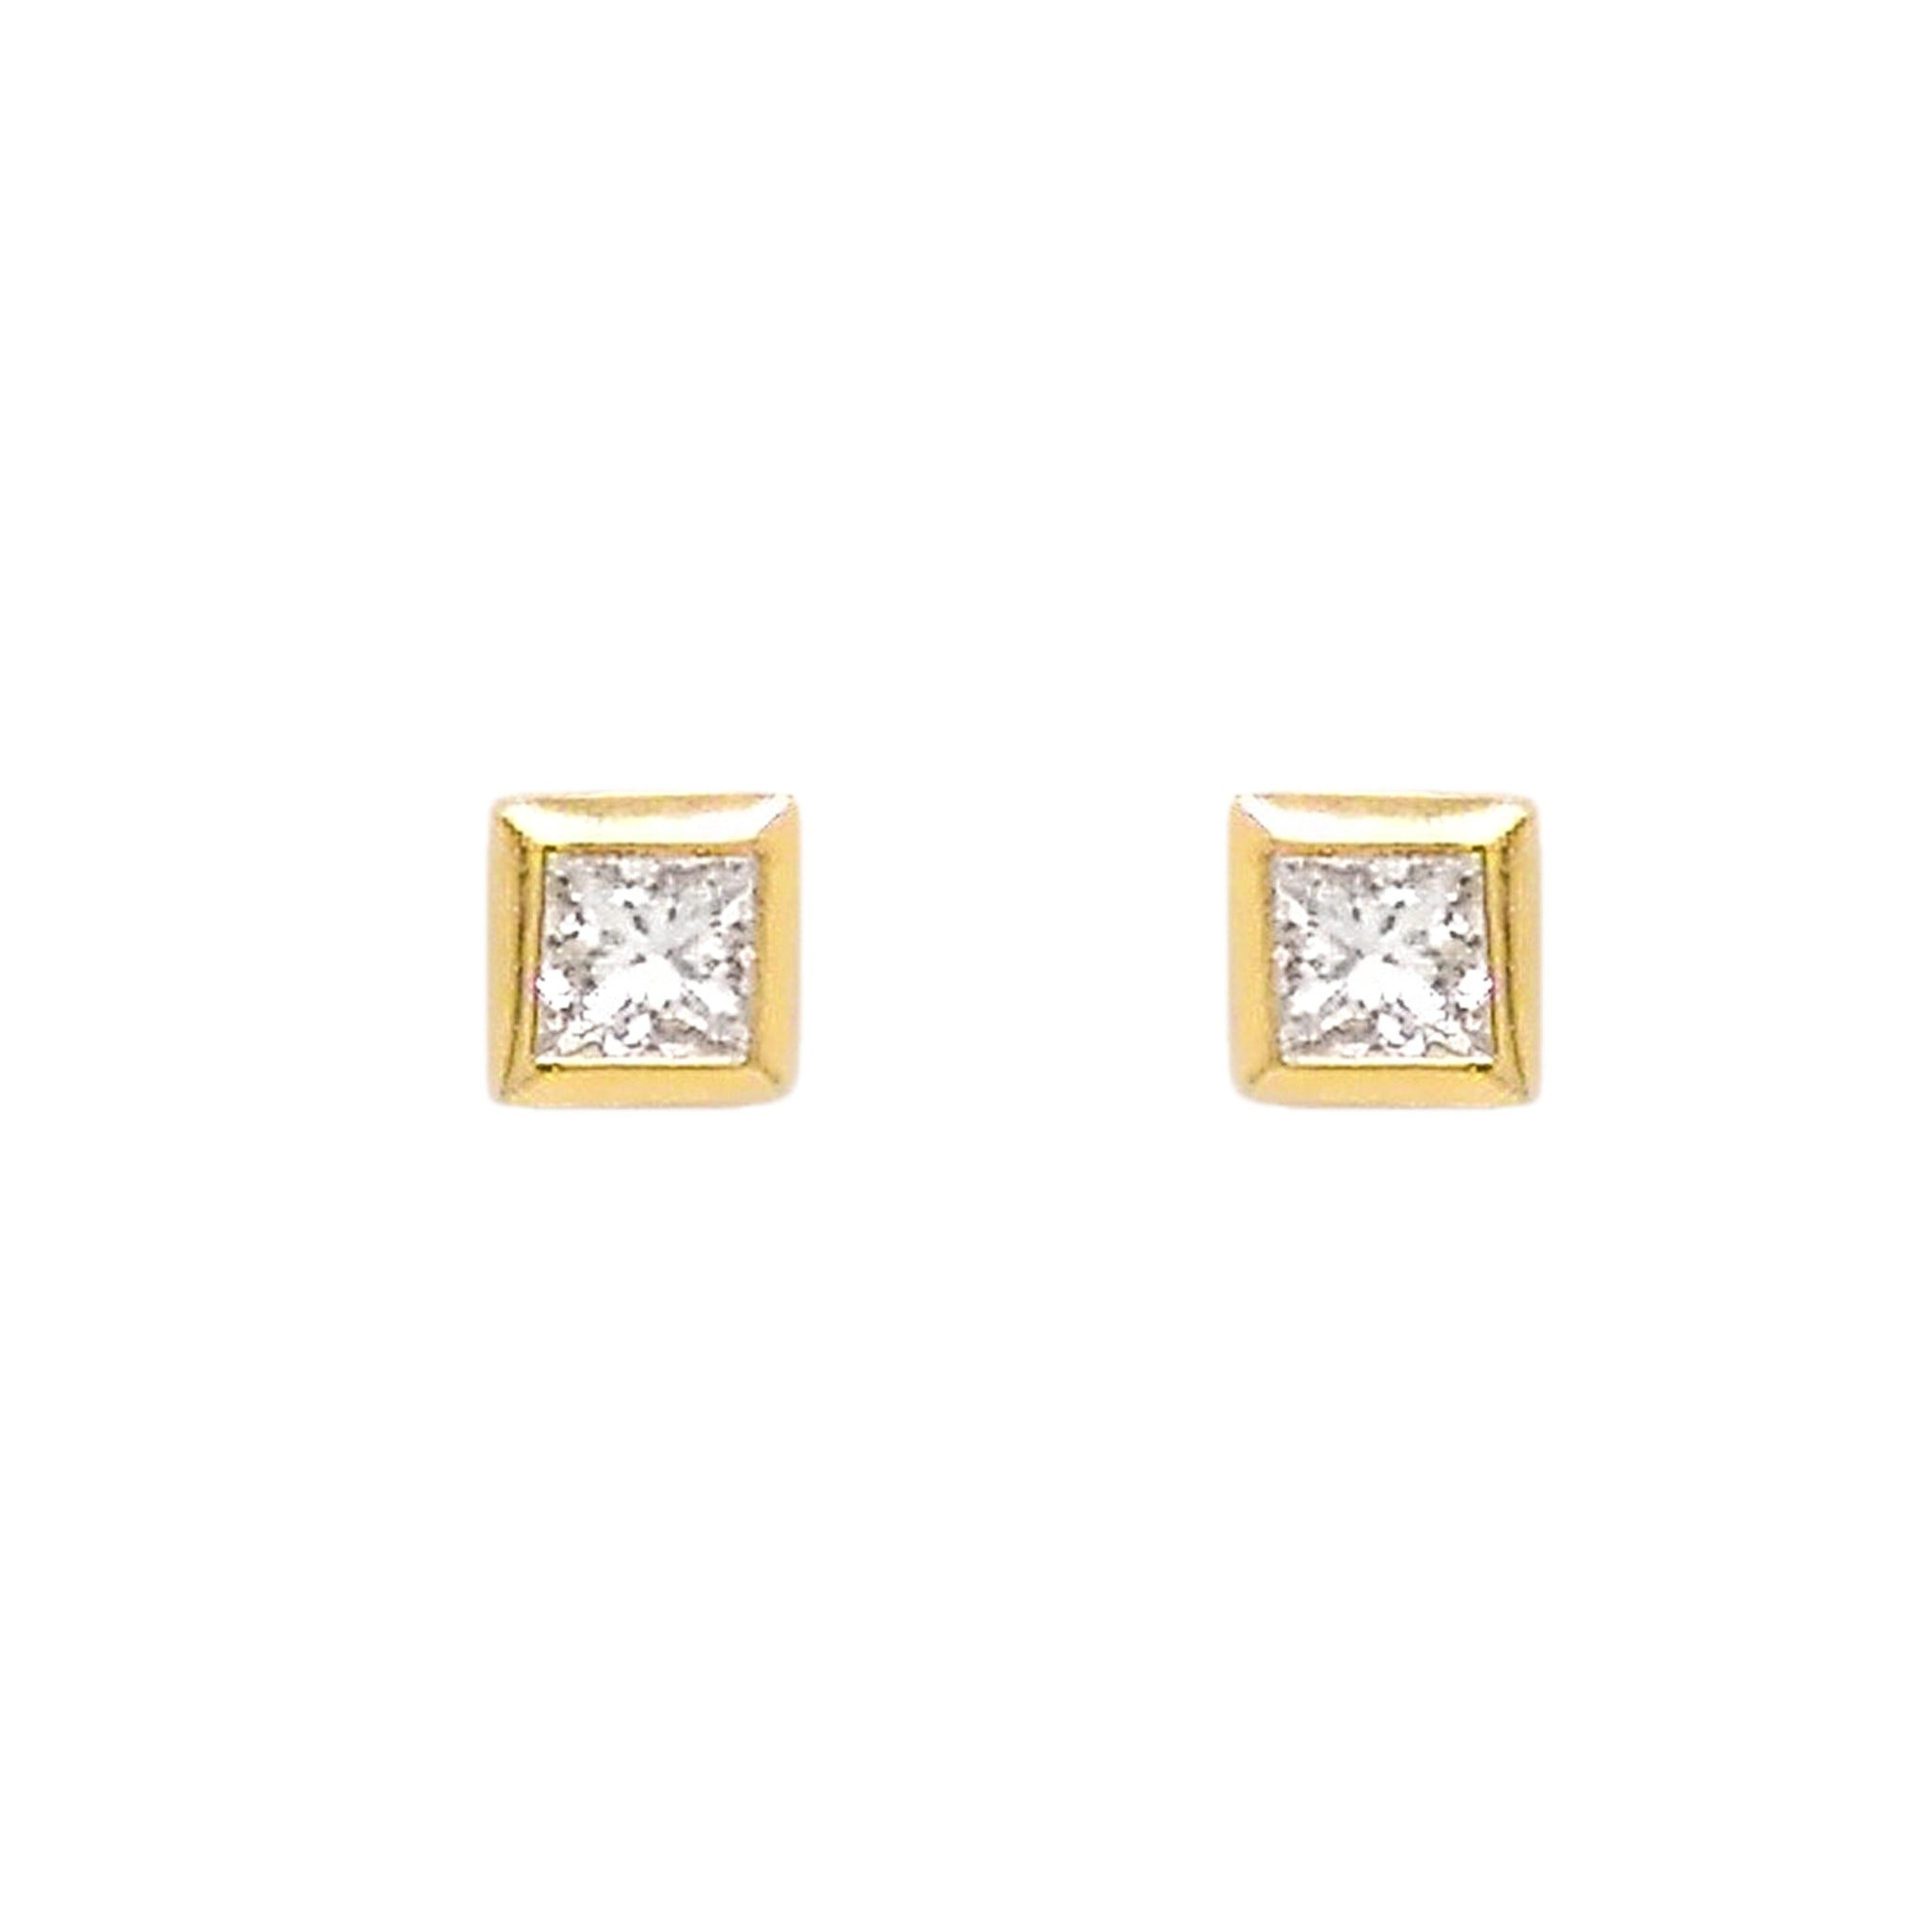 18ct Yellow Gold Princess Cut Square Stud Earrings